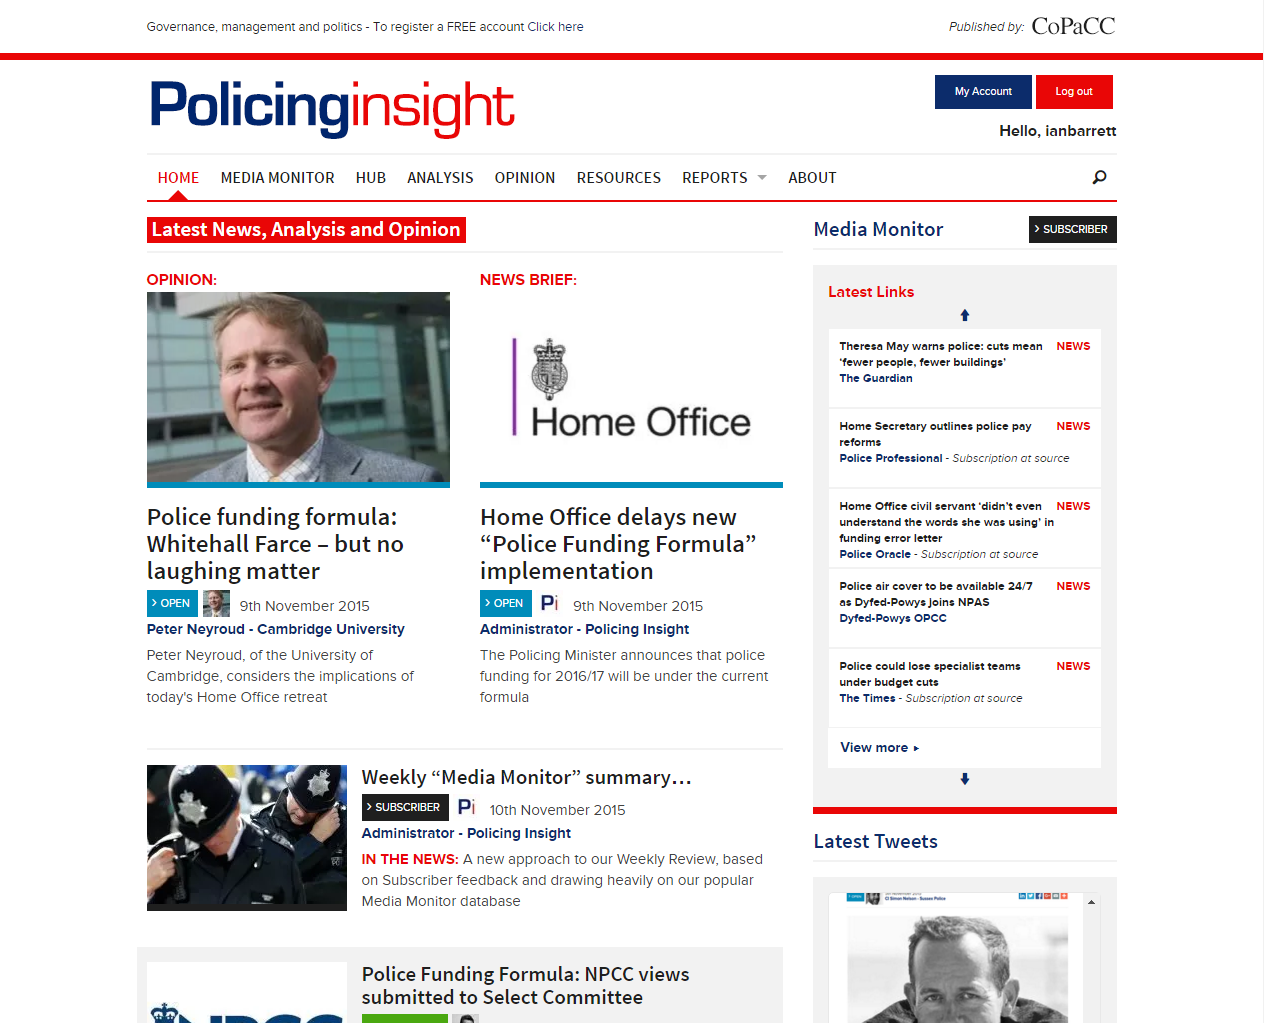 PolicingInsight Home Page - GetSet Media Case Study